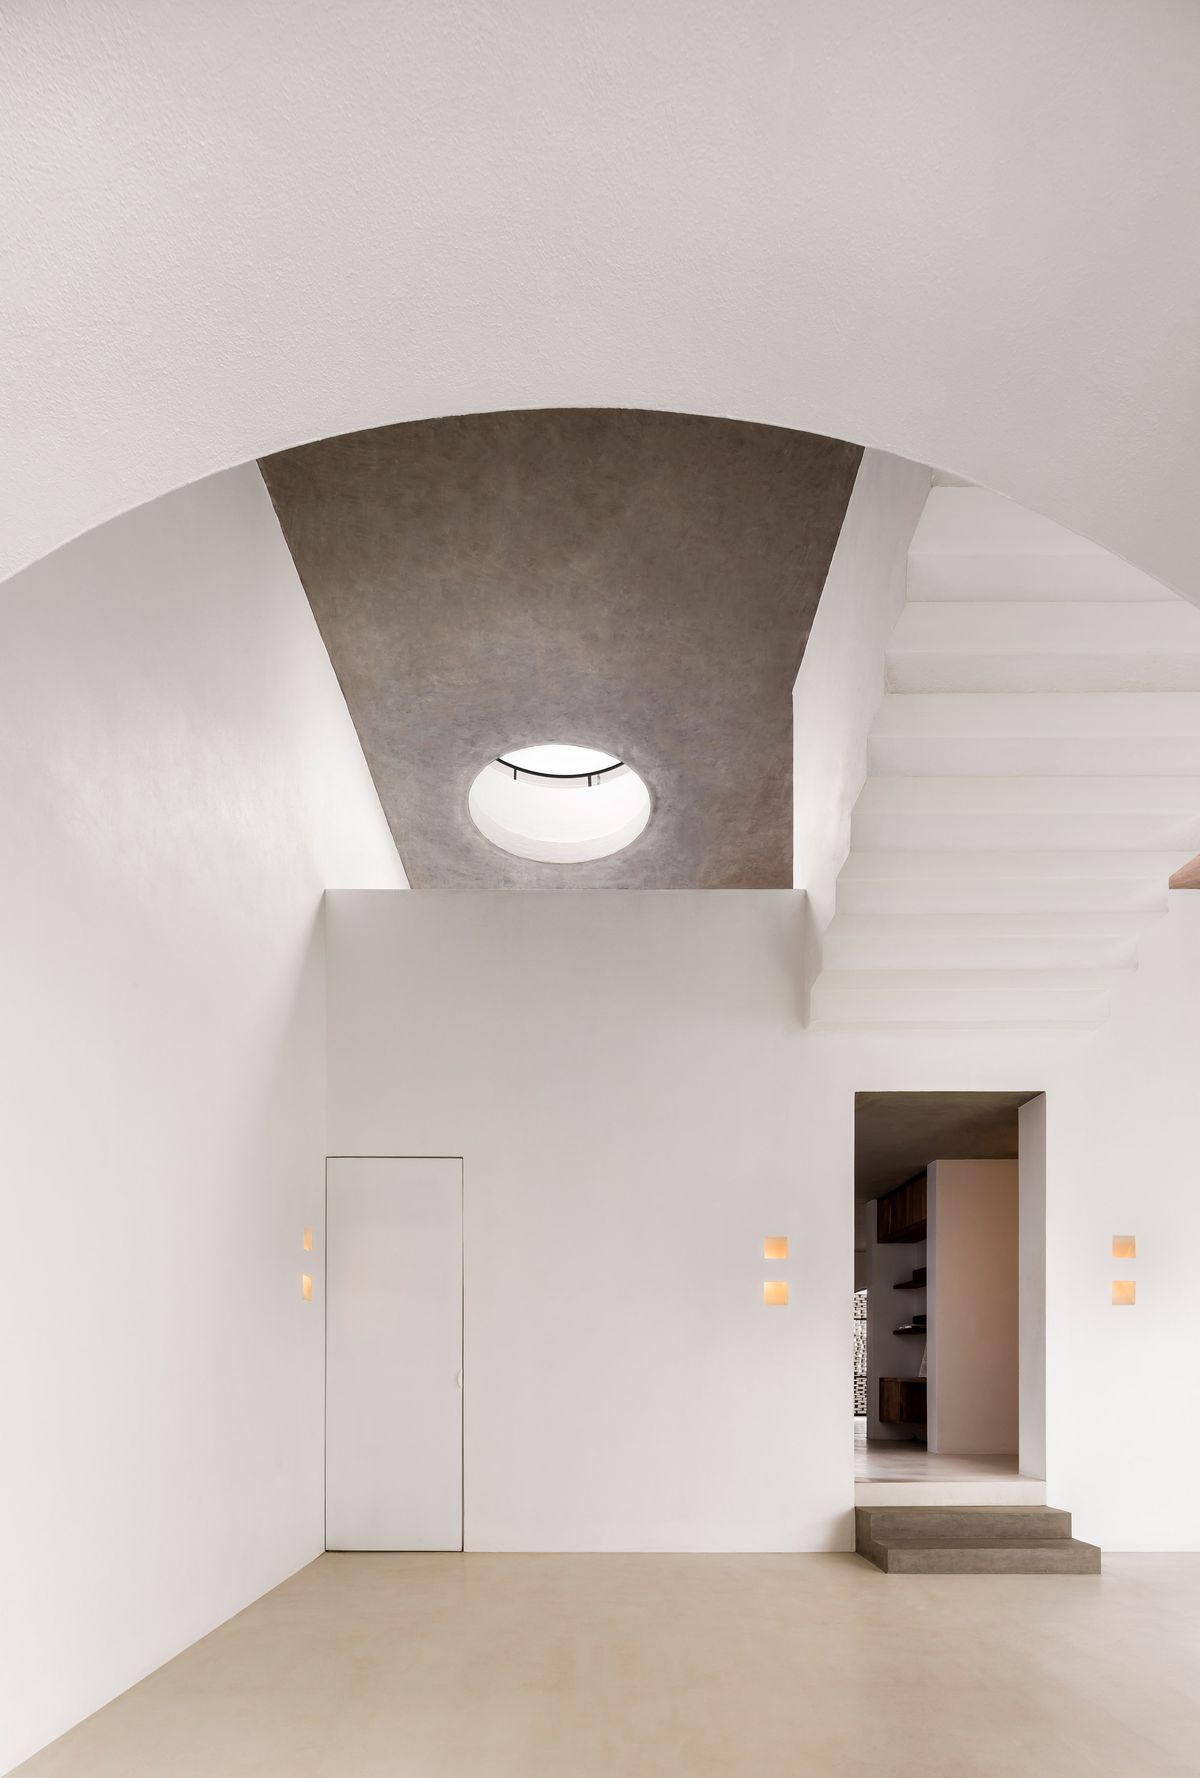 Room with circular skylight, concrete ceiling, and white walls.